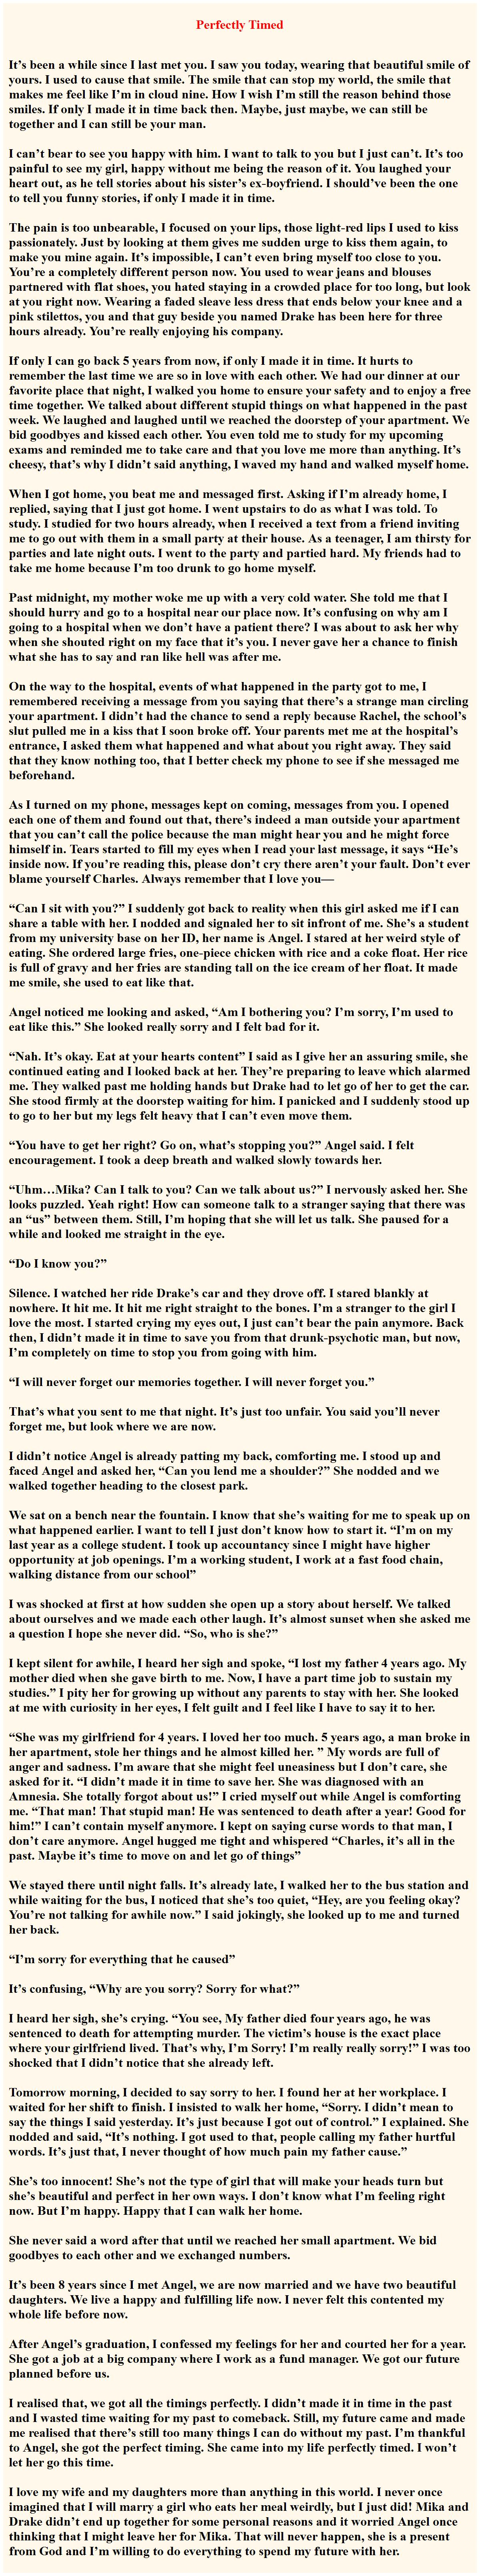 Cute bedtime story for your girlfriend